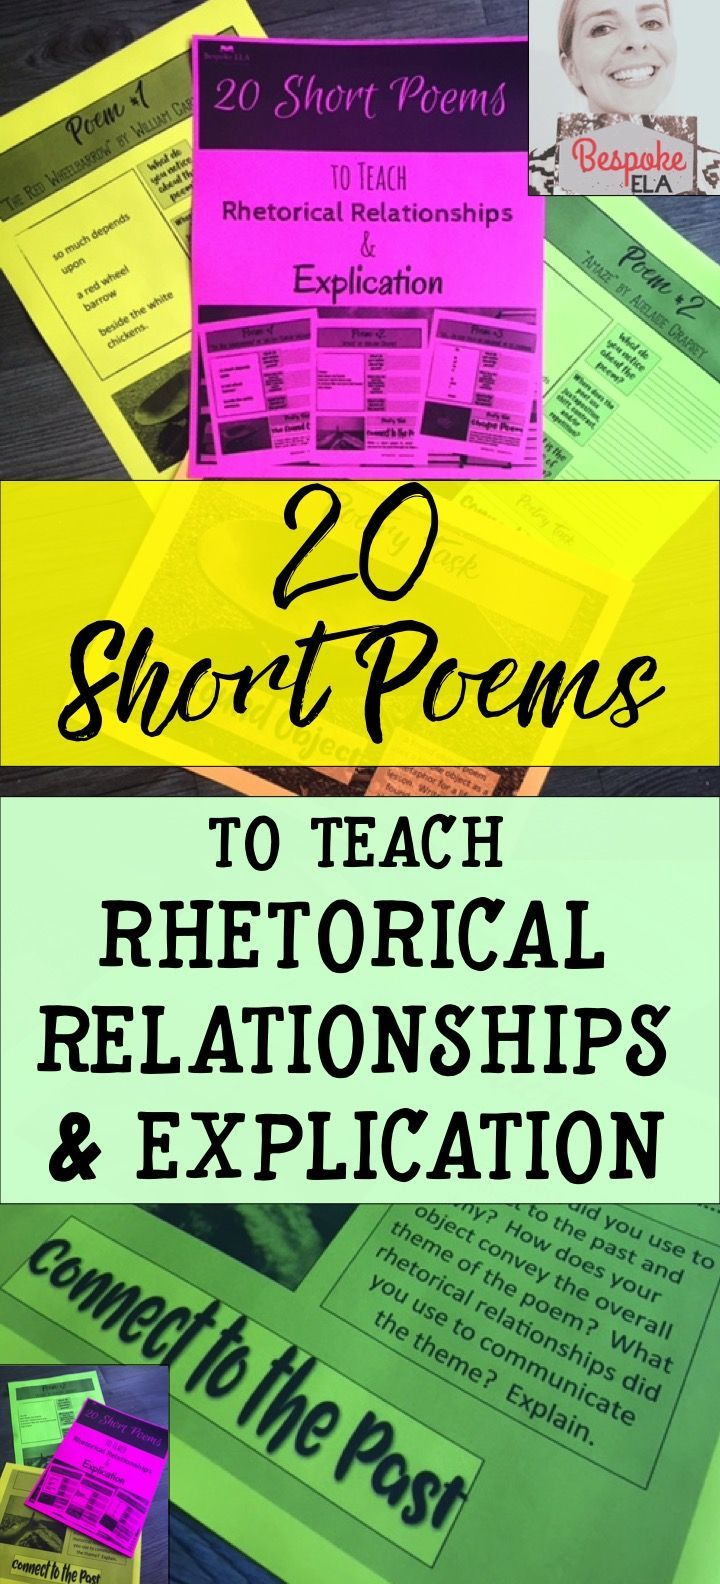 This product by Bespoke ELA contains 20 short poems to analyze for the four, basic rhetorical relationships: juxtaposition, contrast, shift, and repetition. For each poem, students will:  1. Make observations. 2. Identify and analyze the four rhetorical relationships (shift, contrast, repetition, and juxtaposition) 3.  Explain key relationships in the poem.  4.  Write their own original poems.  These lessons are great to use as bell ringers, group practice, or full class exercises.  Bespoke…